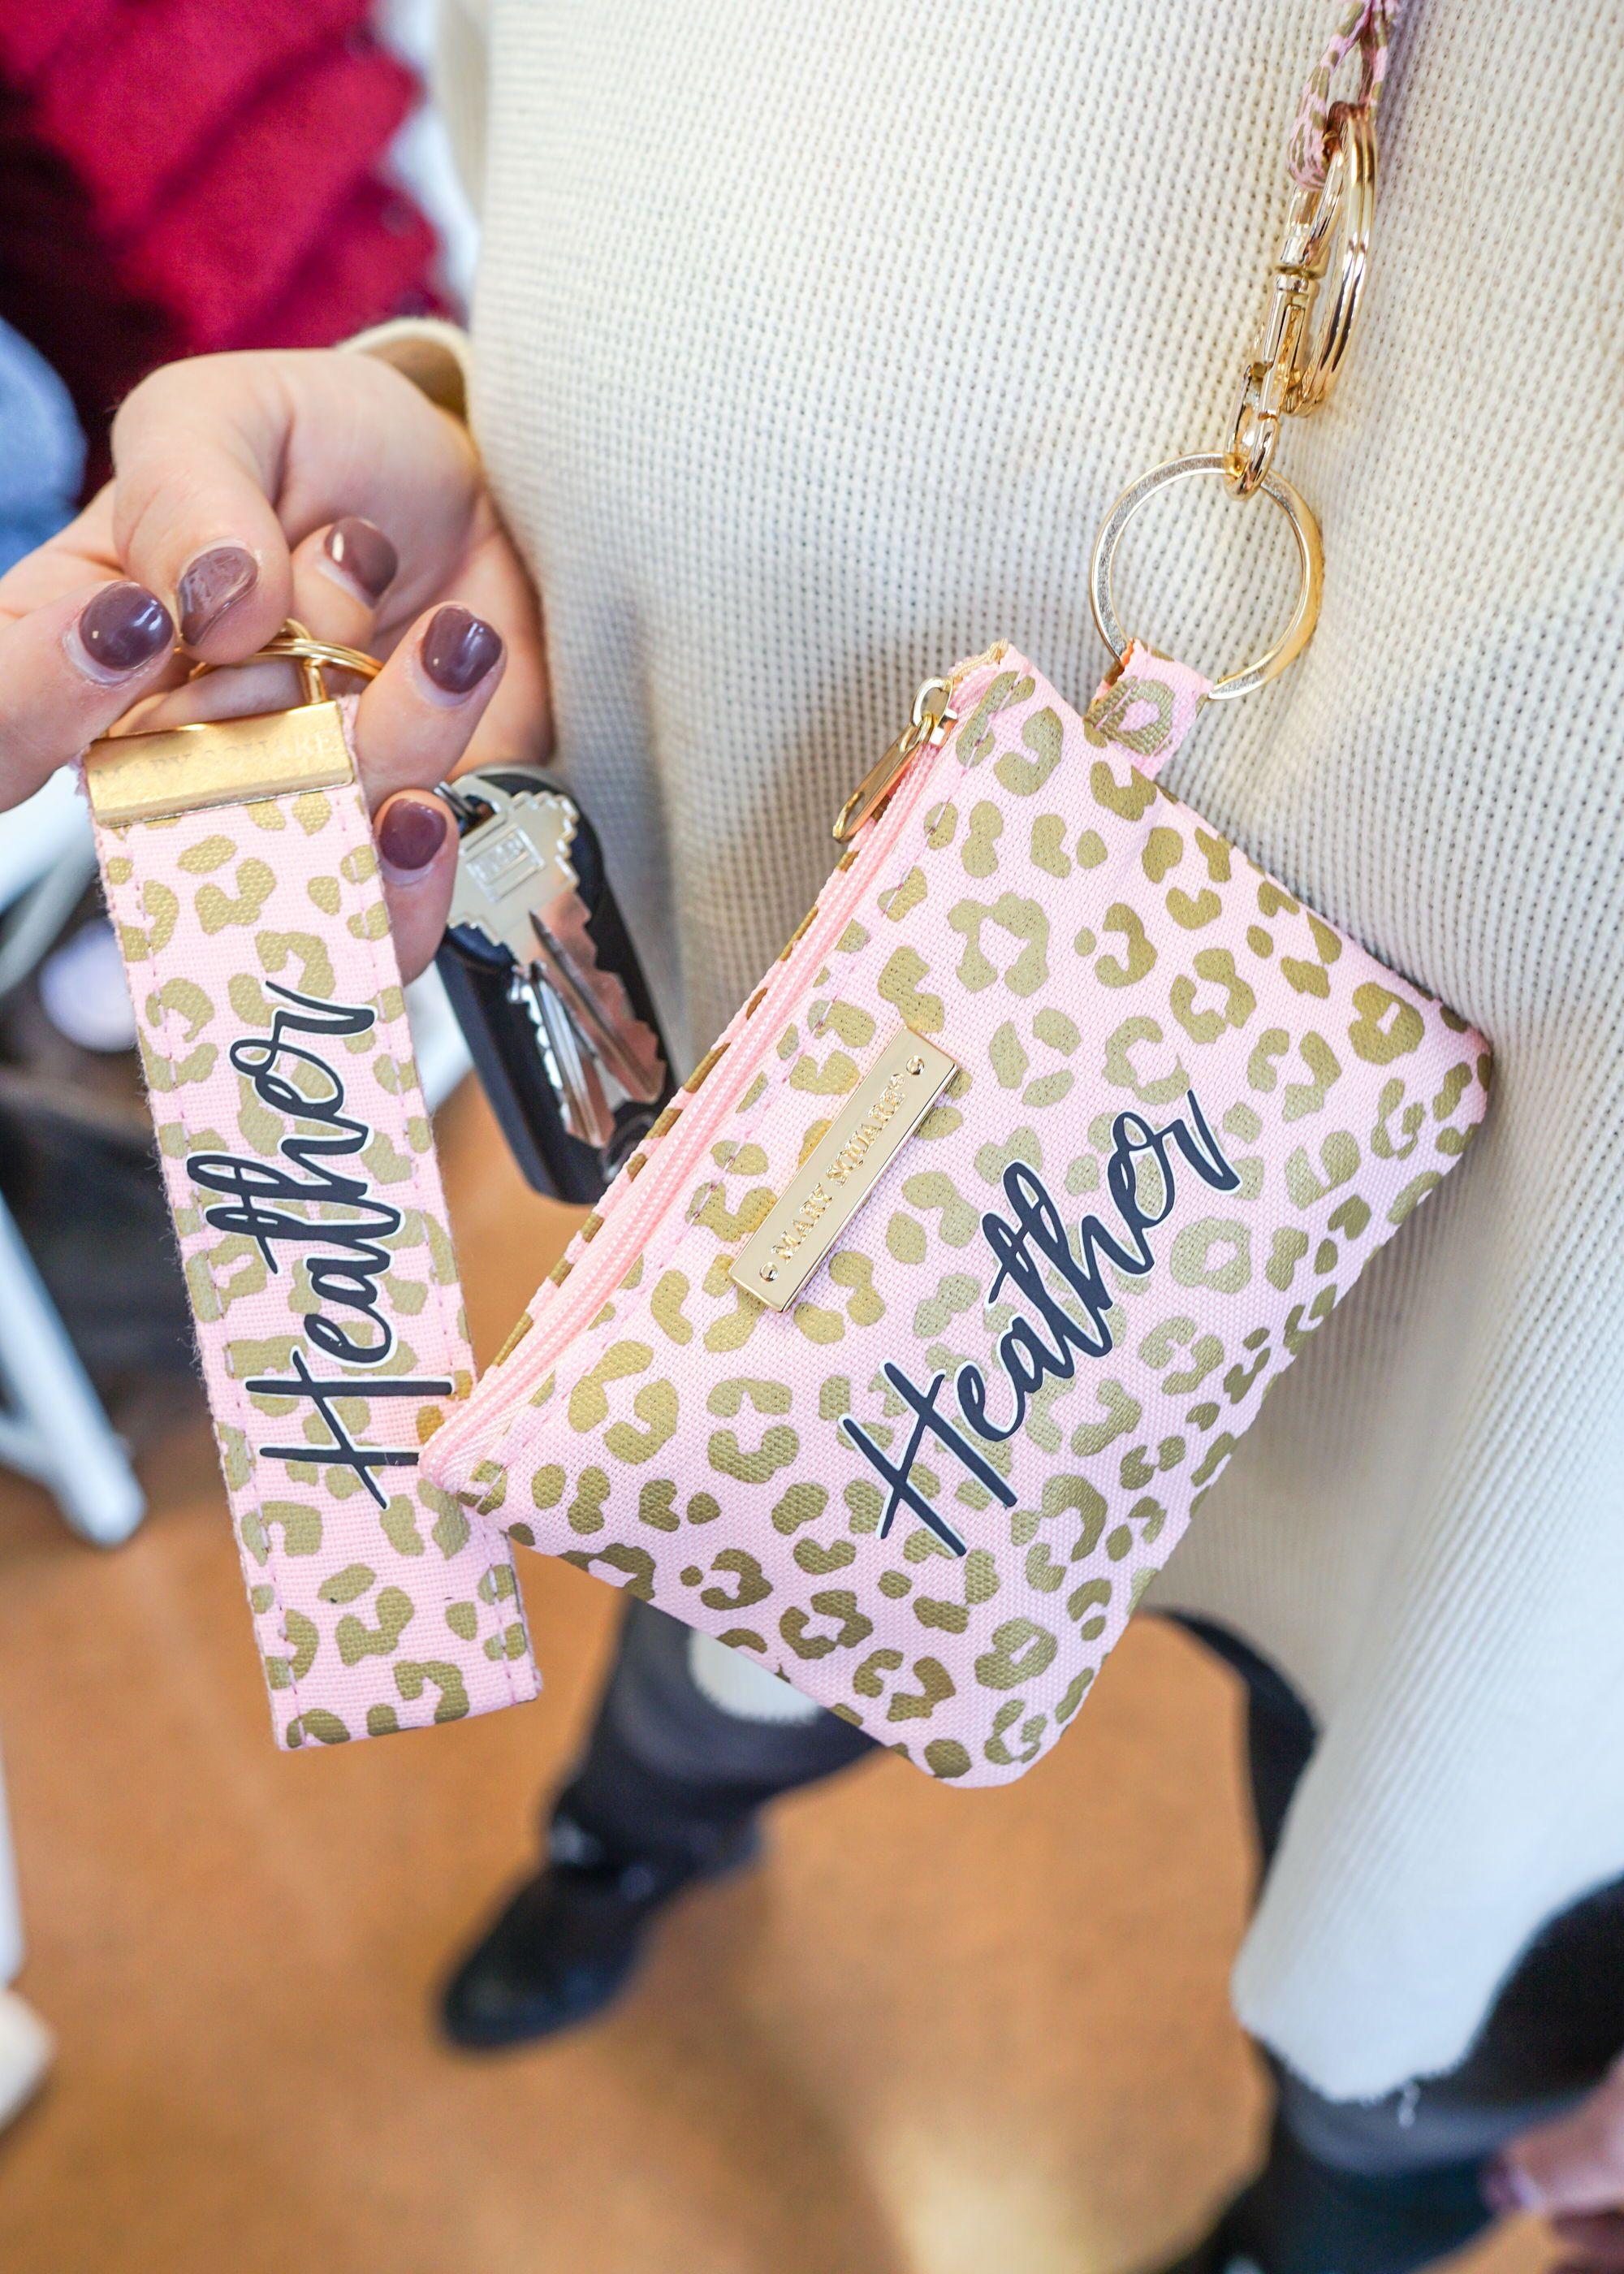 Blush leopard personalized gifts in 2021 gifts for